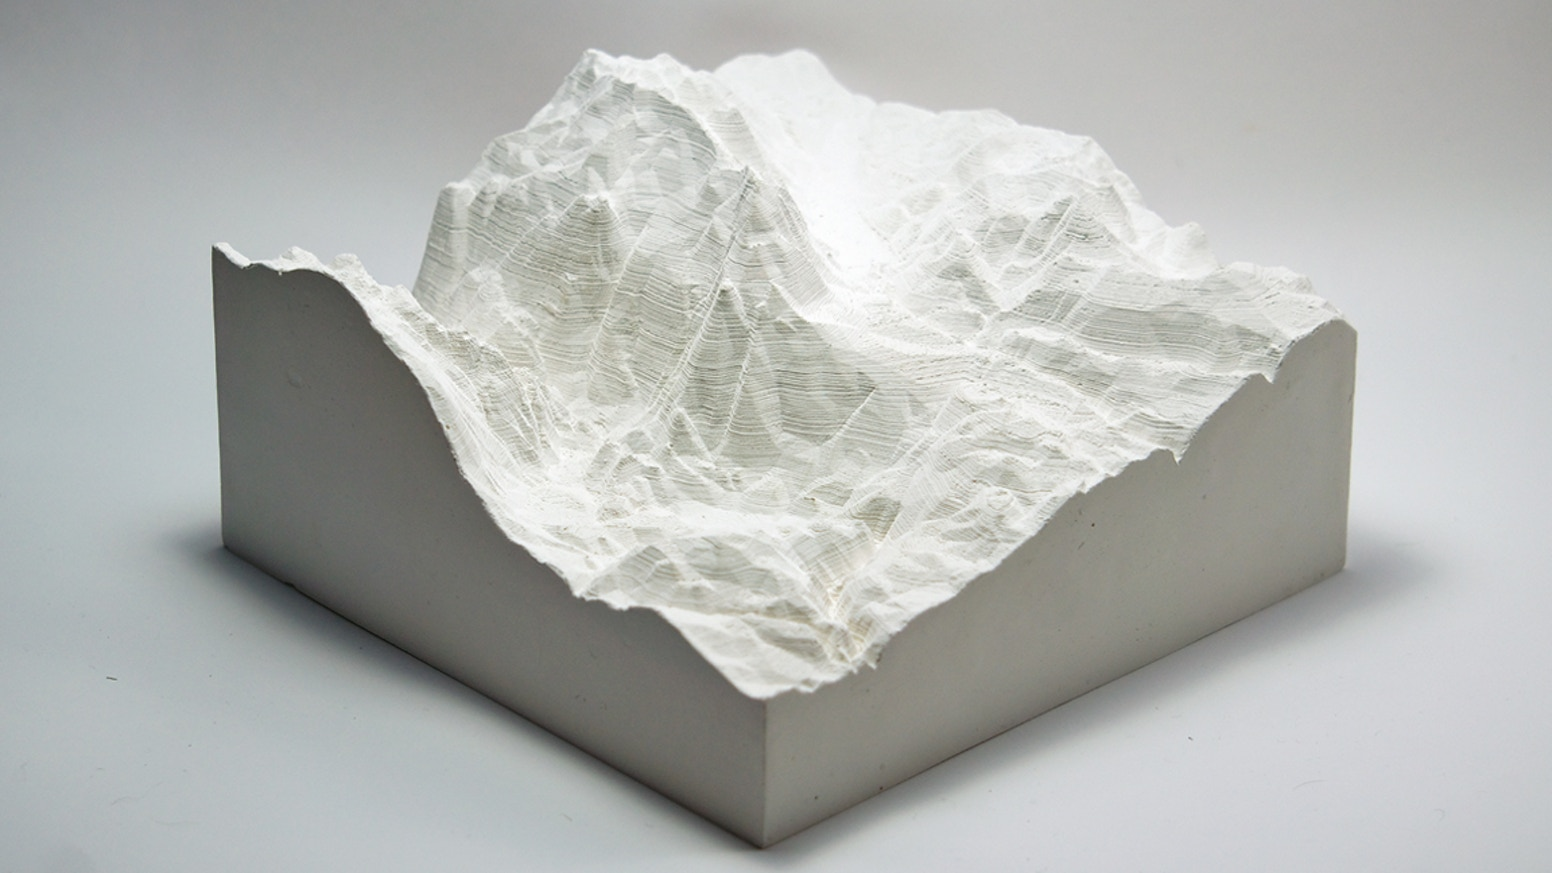 Landscape castings that visualize the voting power of one of our most sublime states and fund an independent art and research project.